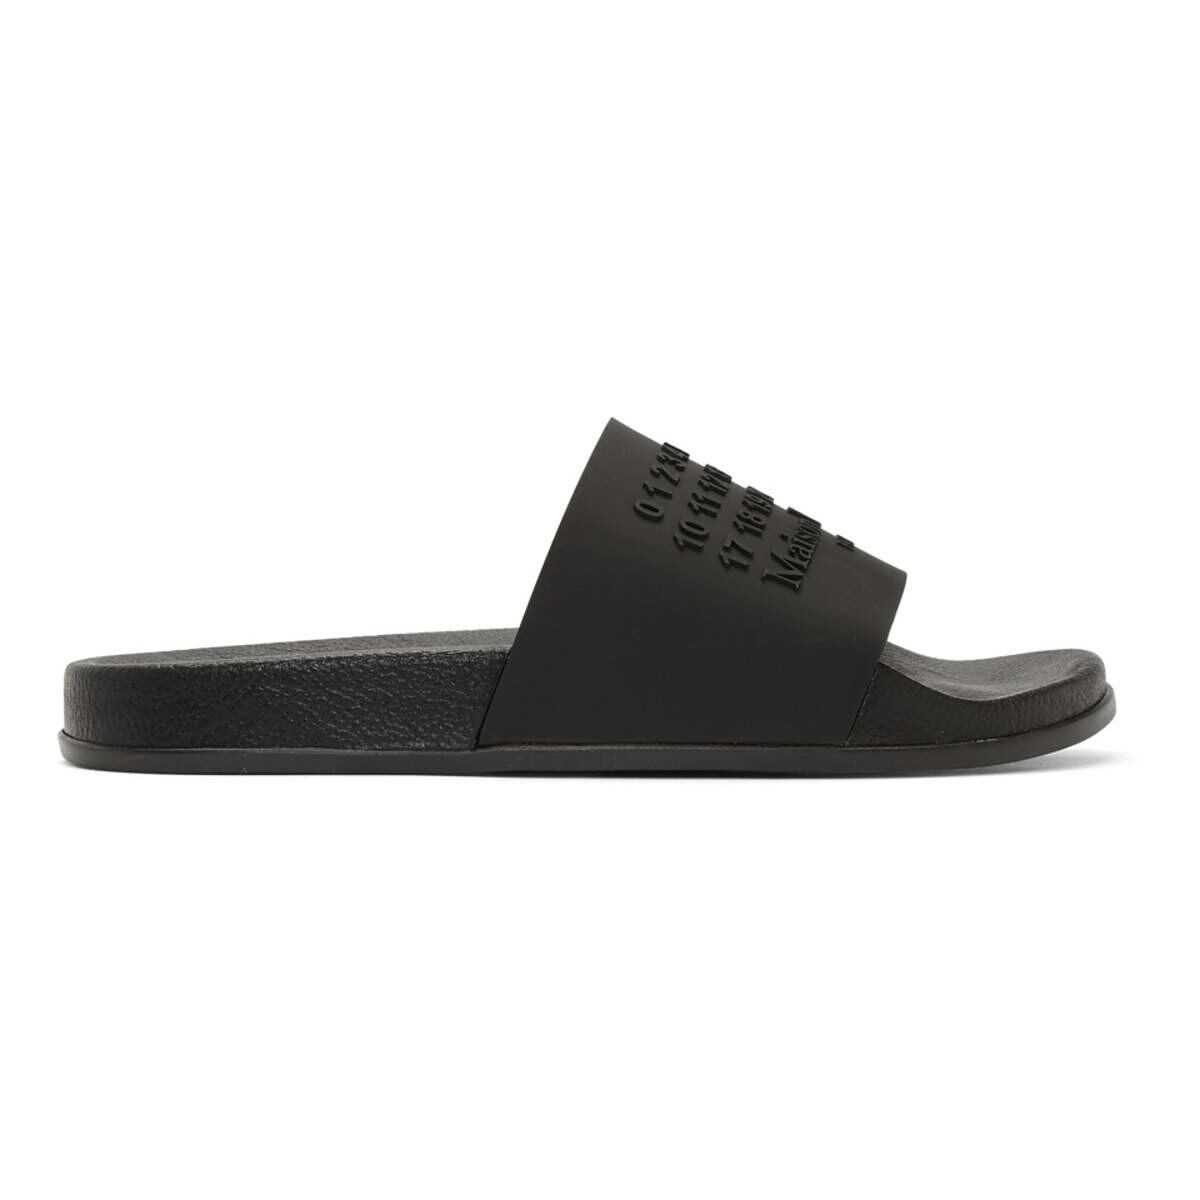 Maison Margiela Black Shower Slides Ssense USA MEN Men SHOES Mens SANDALS